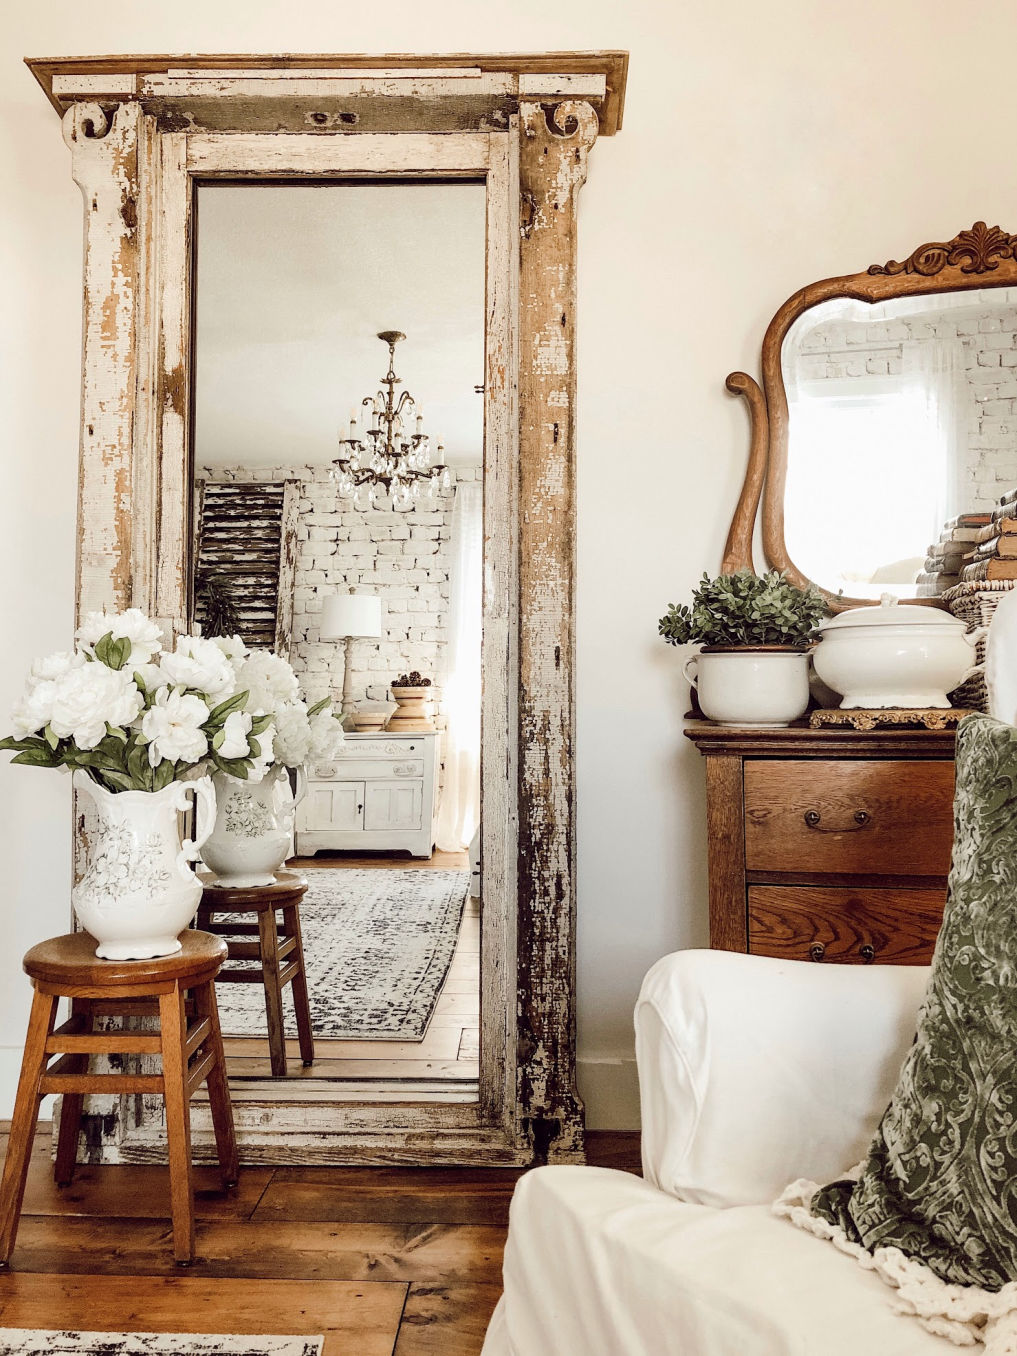 Farmhouse bedroom with architectural salvage turned mirror #farmhousedecor #vintagedecor #farmhousestyle #farmhousebedroom